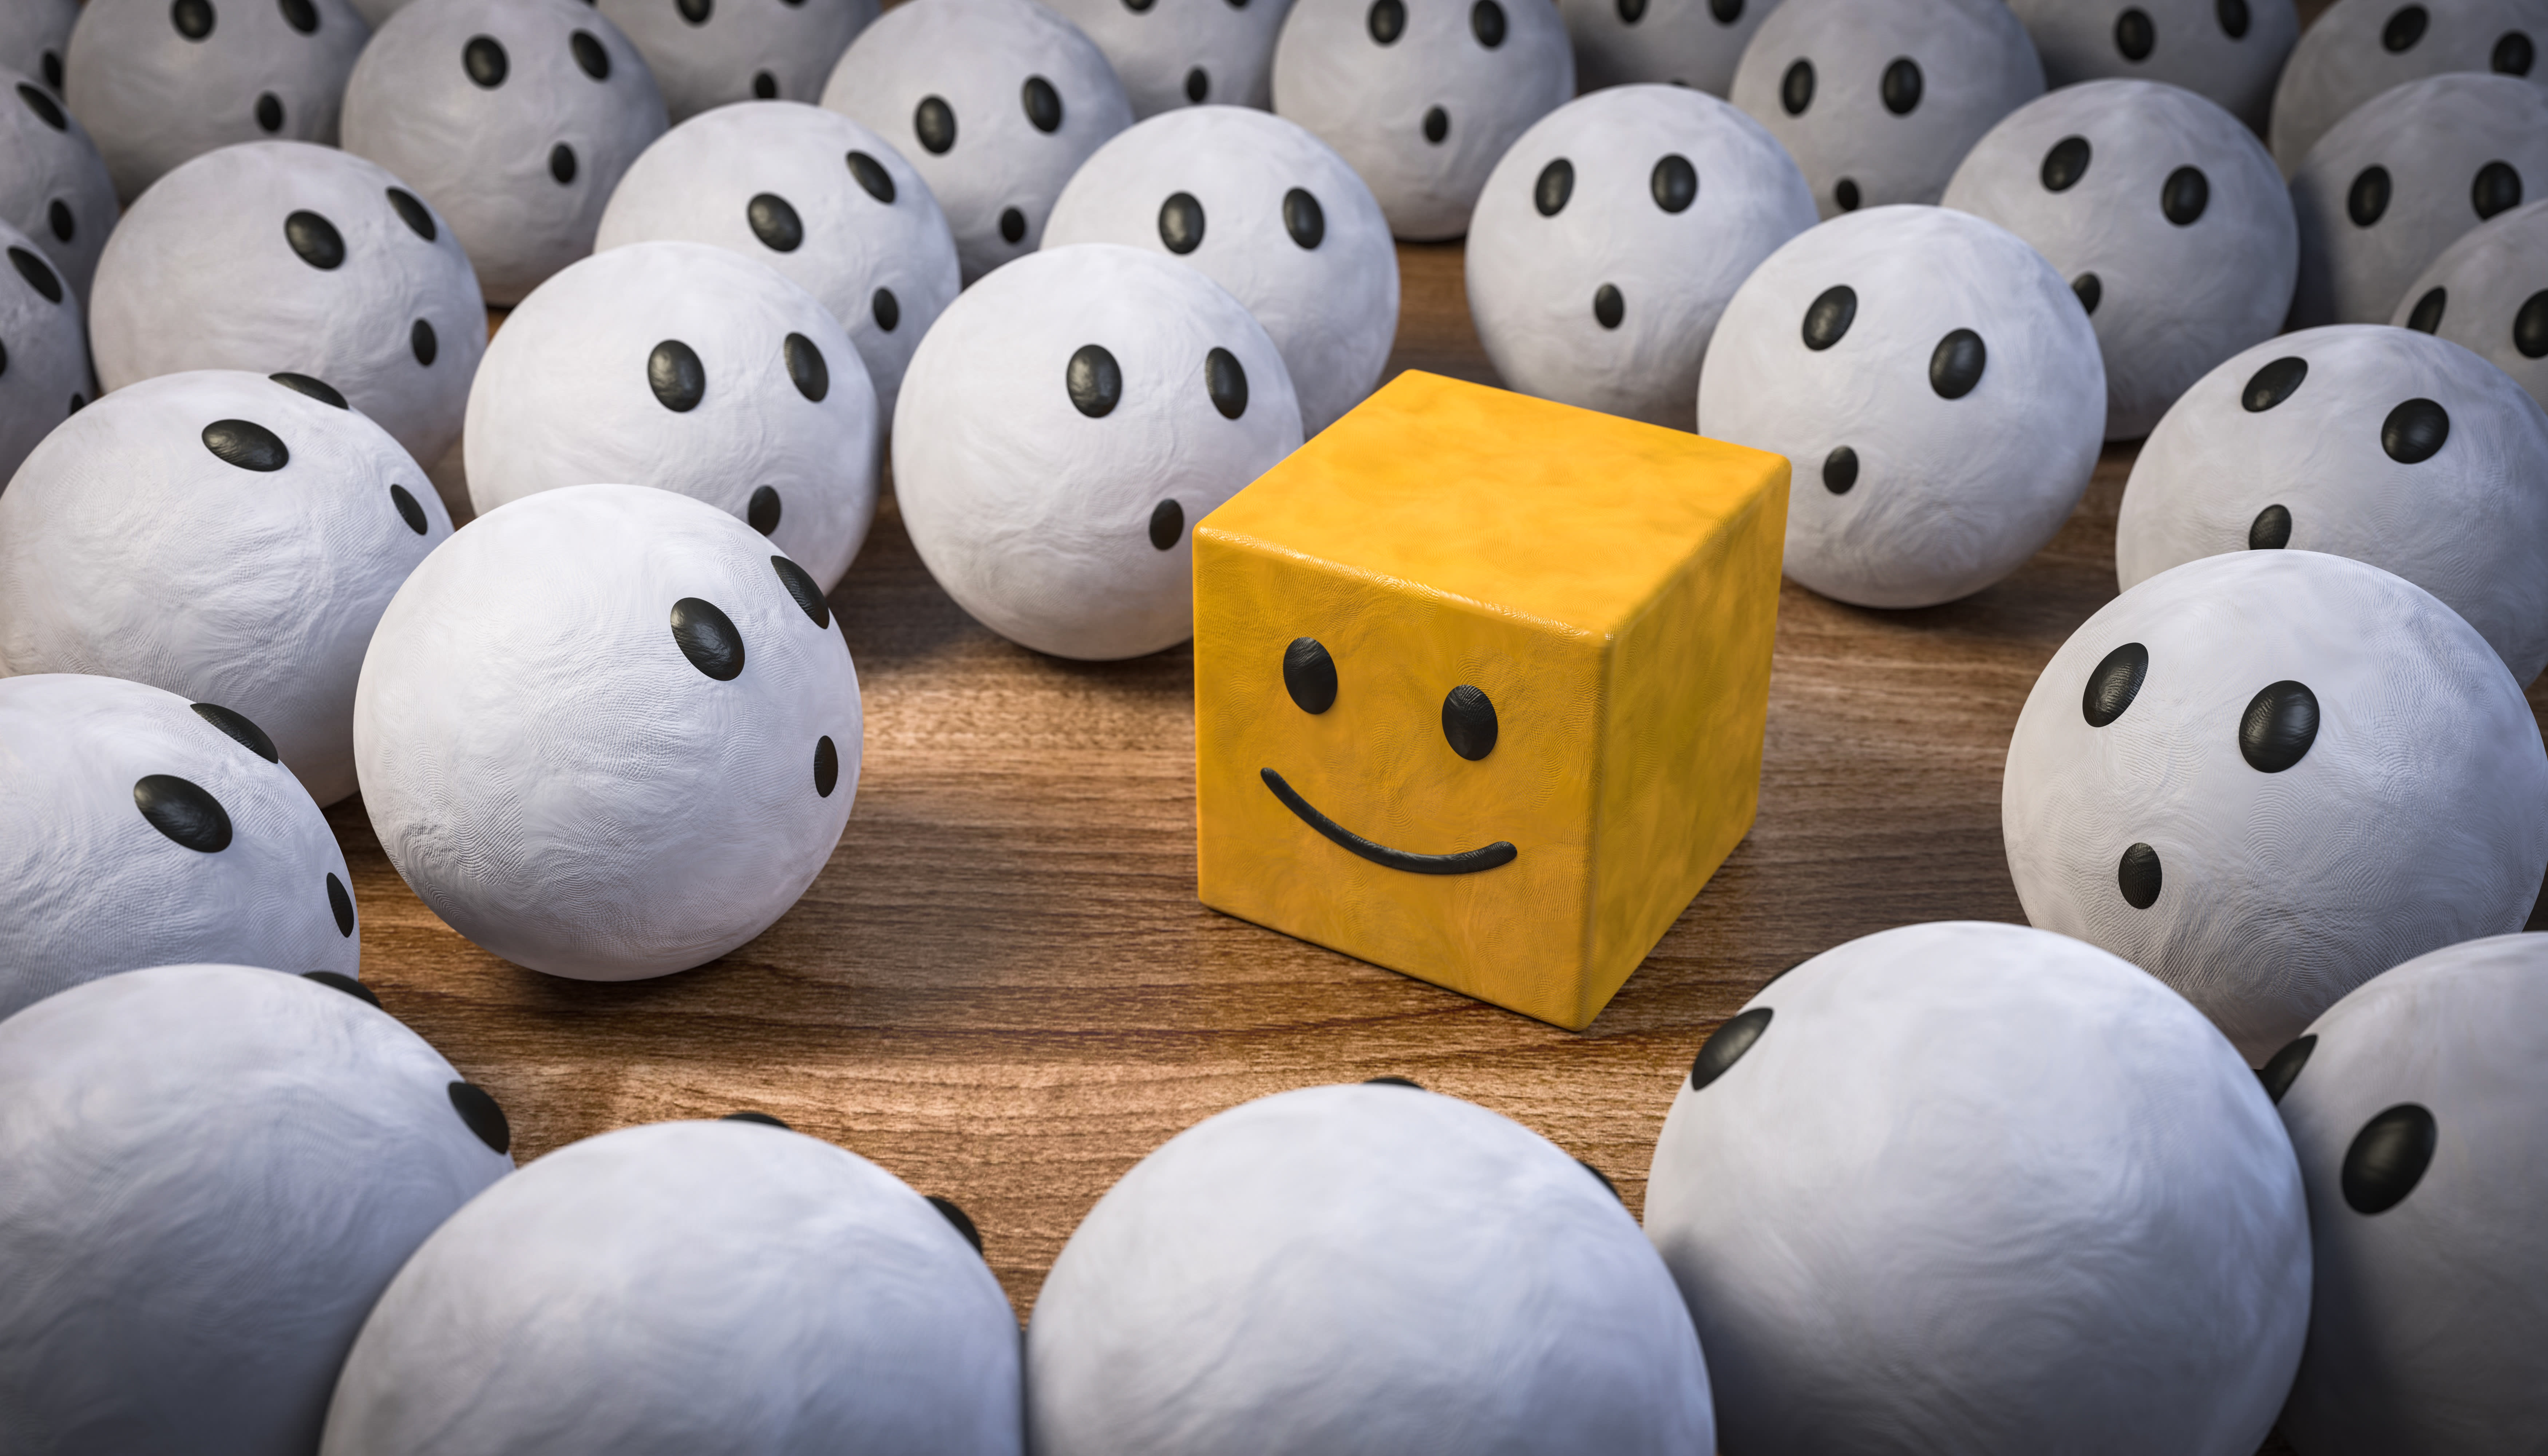 3D Illustration of a bunch of white balls with wow faces looking at a yellow square with a smiley face